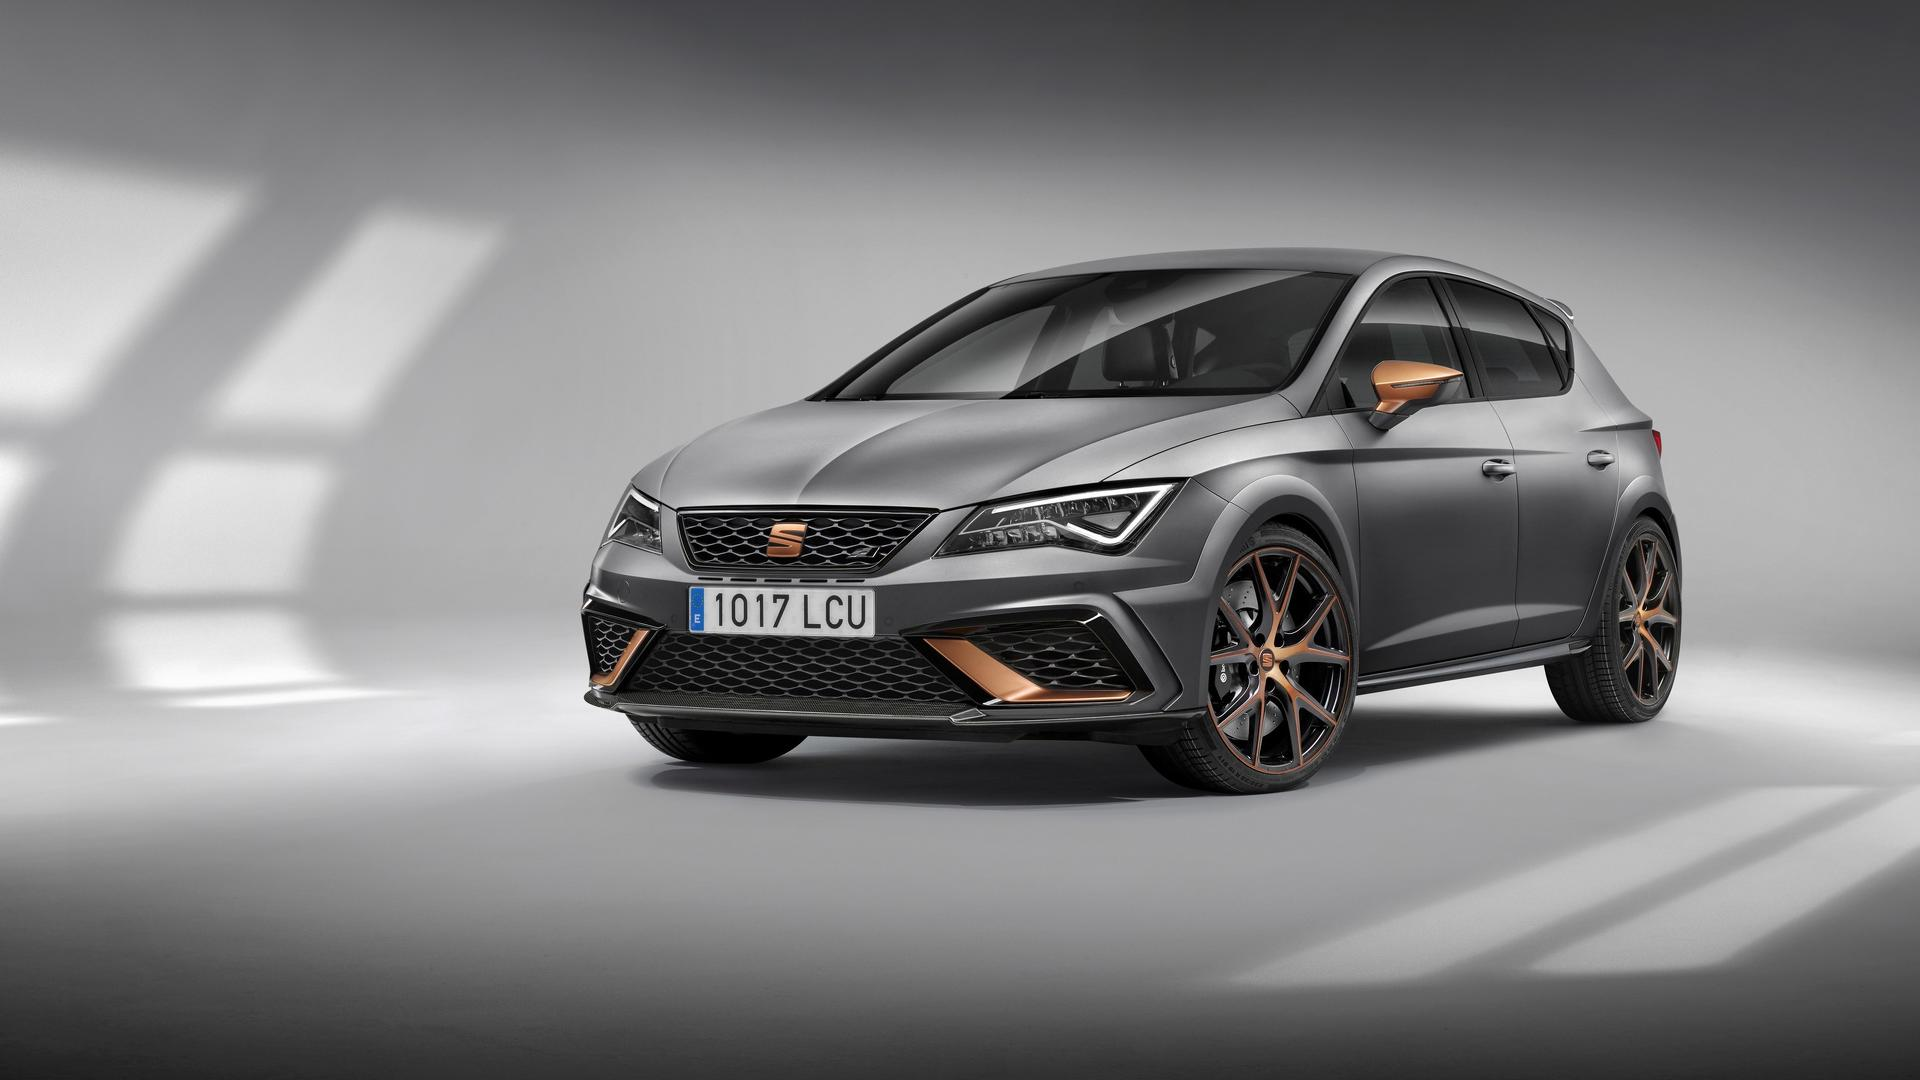 SEAT Leon Cupra R revealed as most powerful SEAT ever